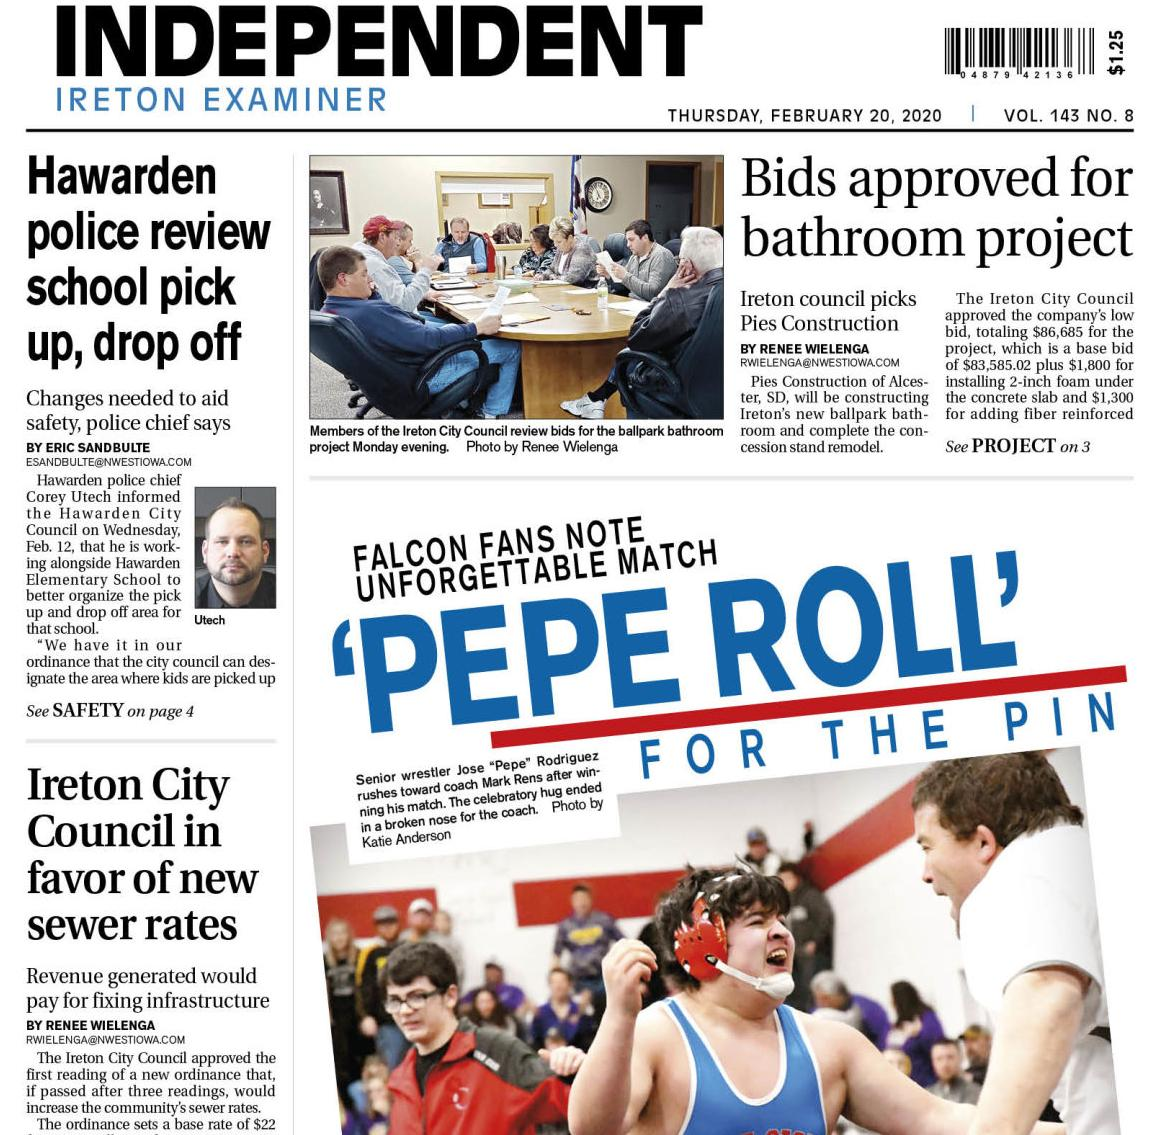 Hawarden Independent/Ireton Examiner Feb. 20, 2020